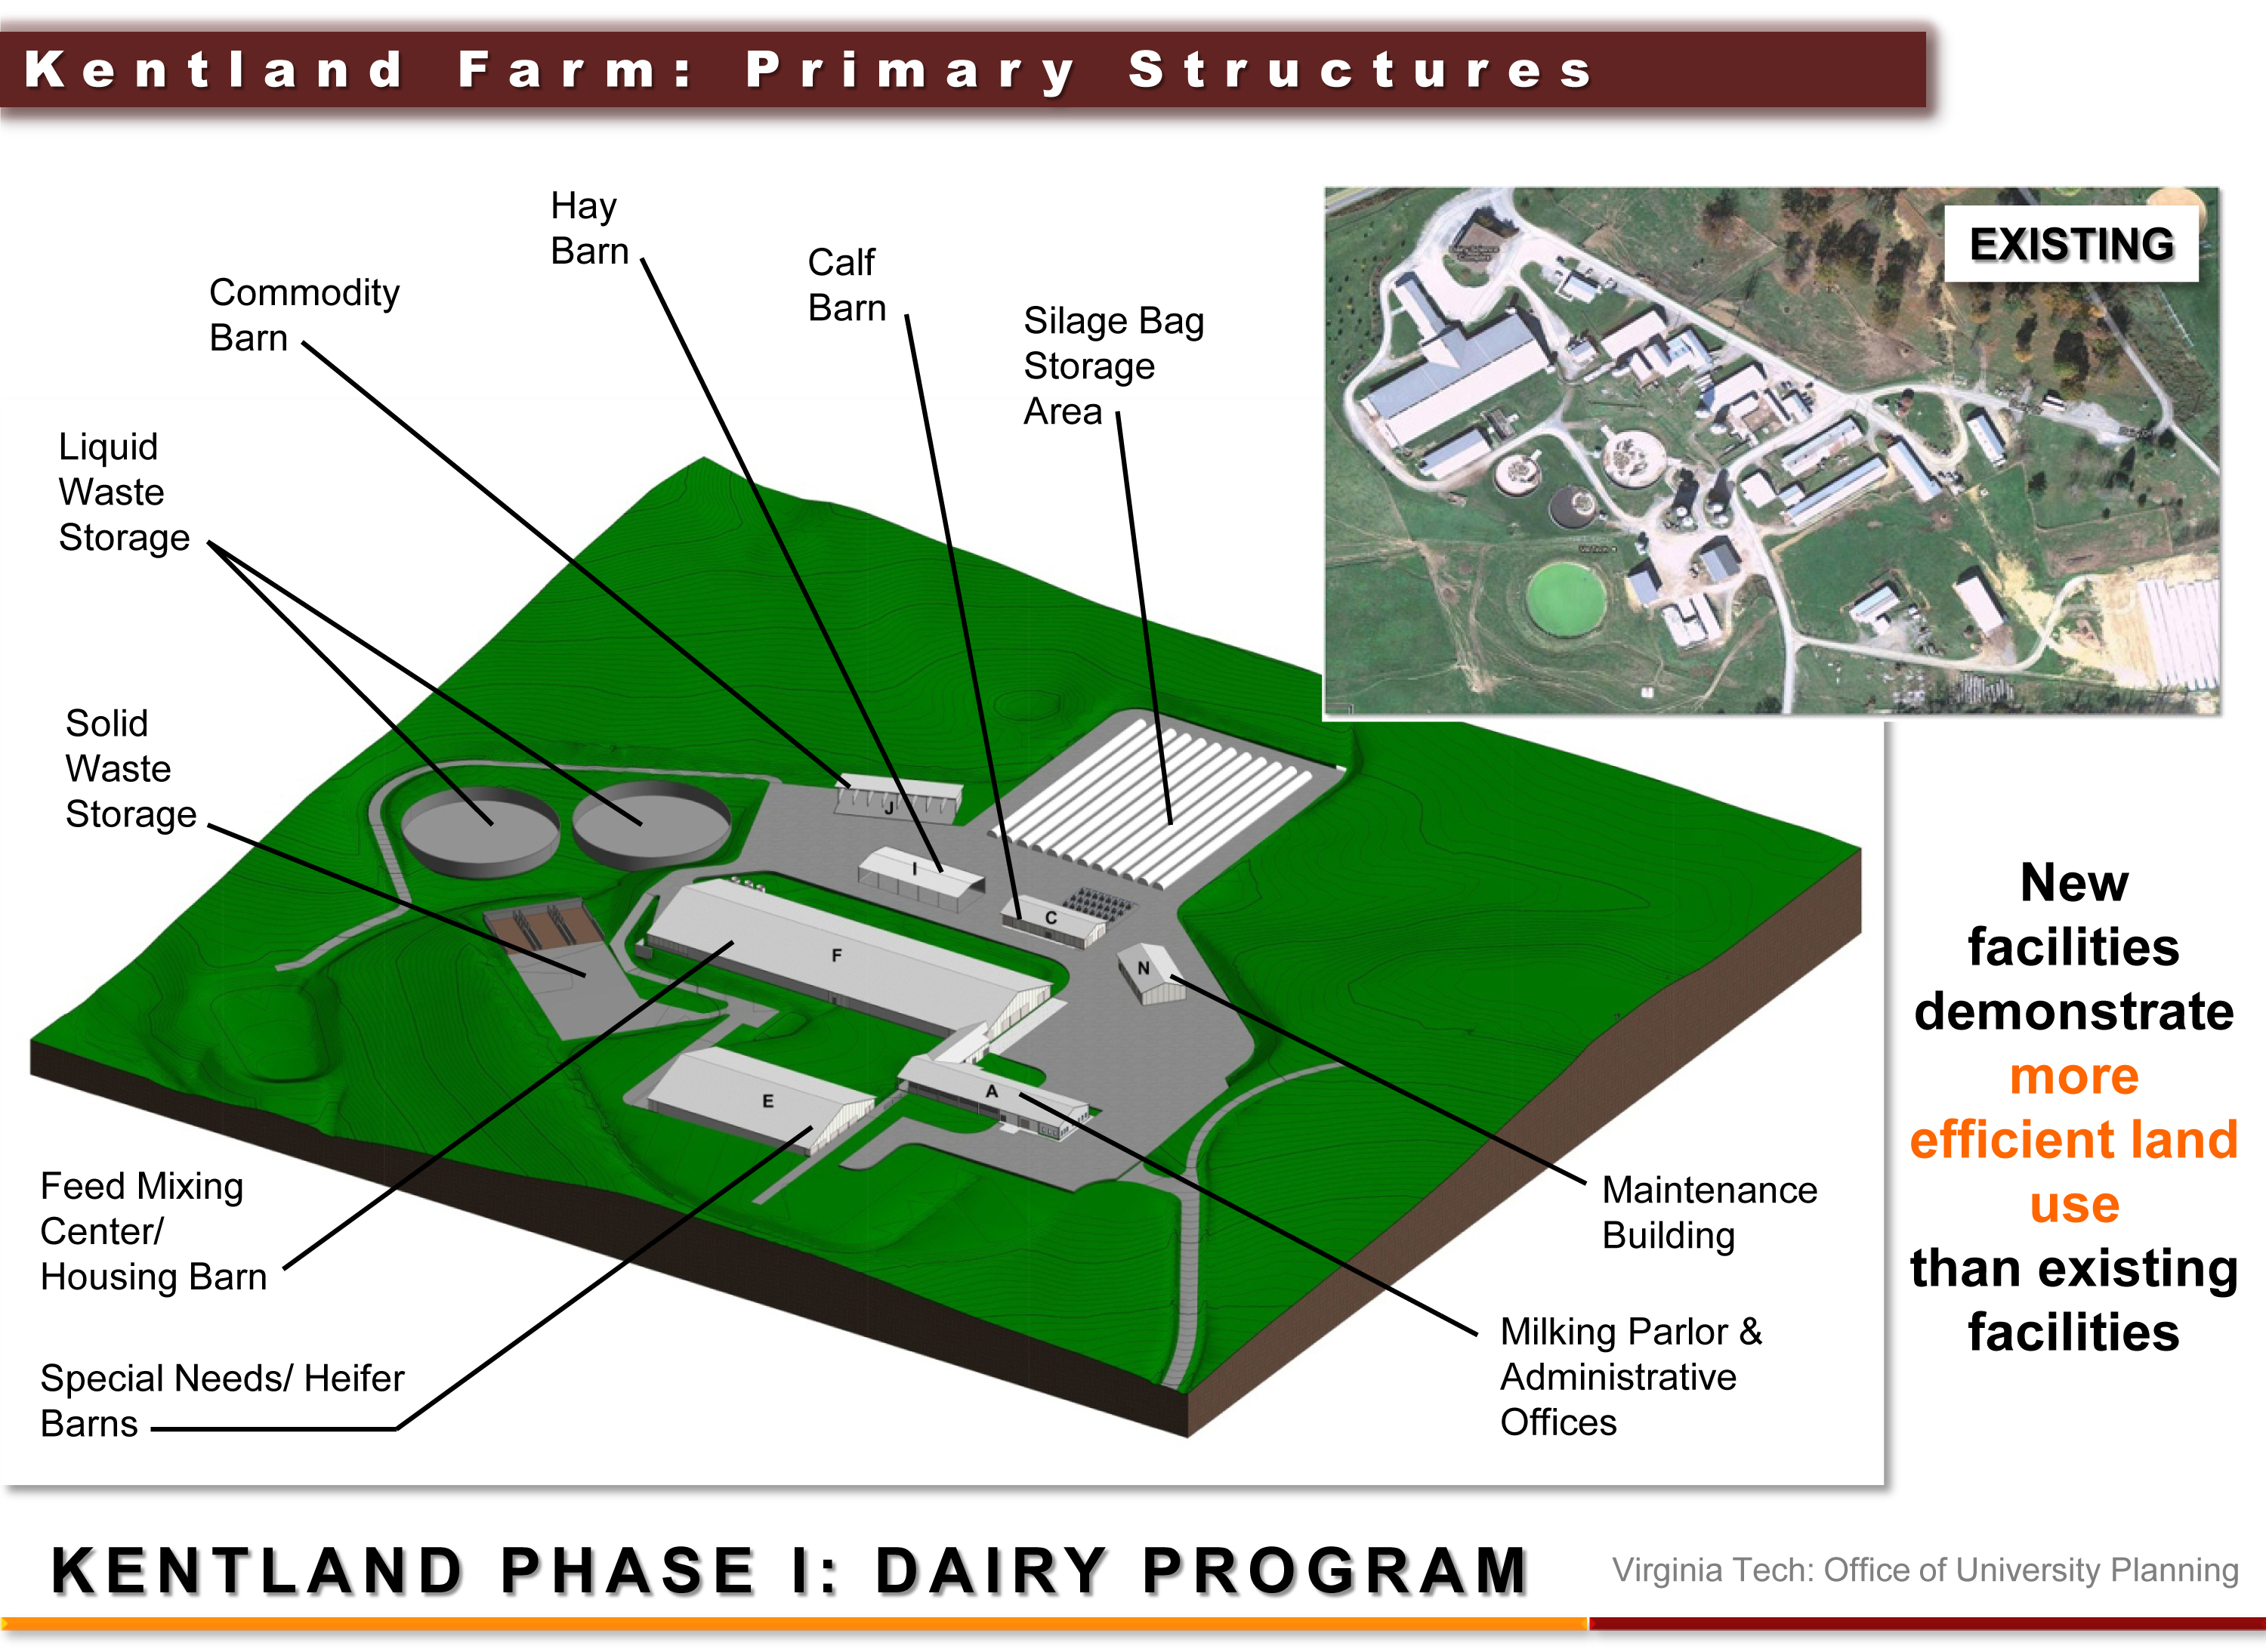 Modern dairy complex approved for Kentland Farm